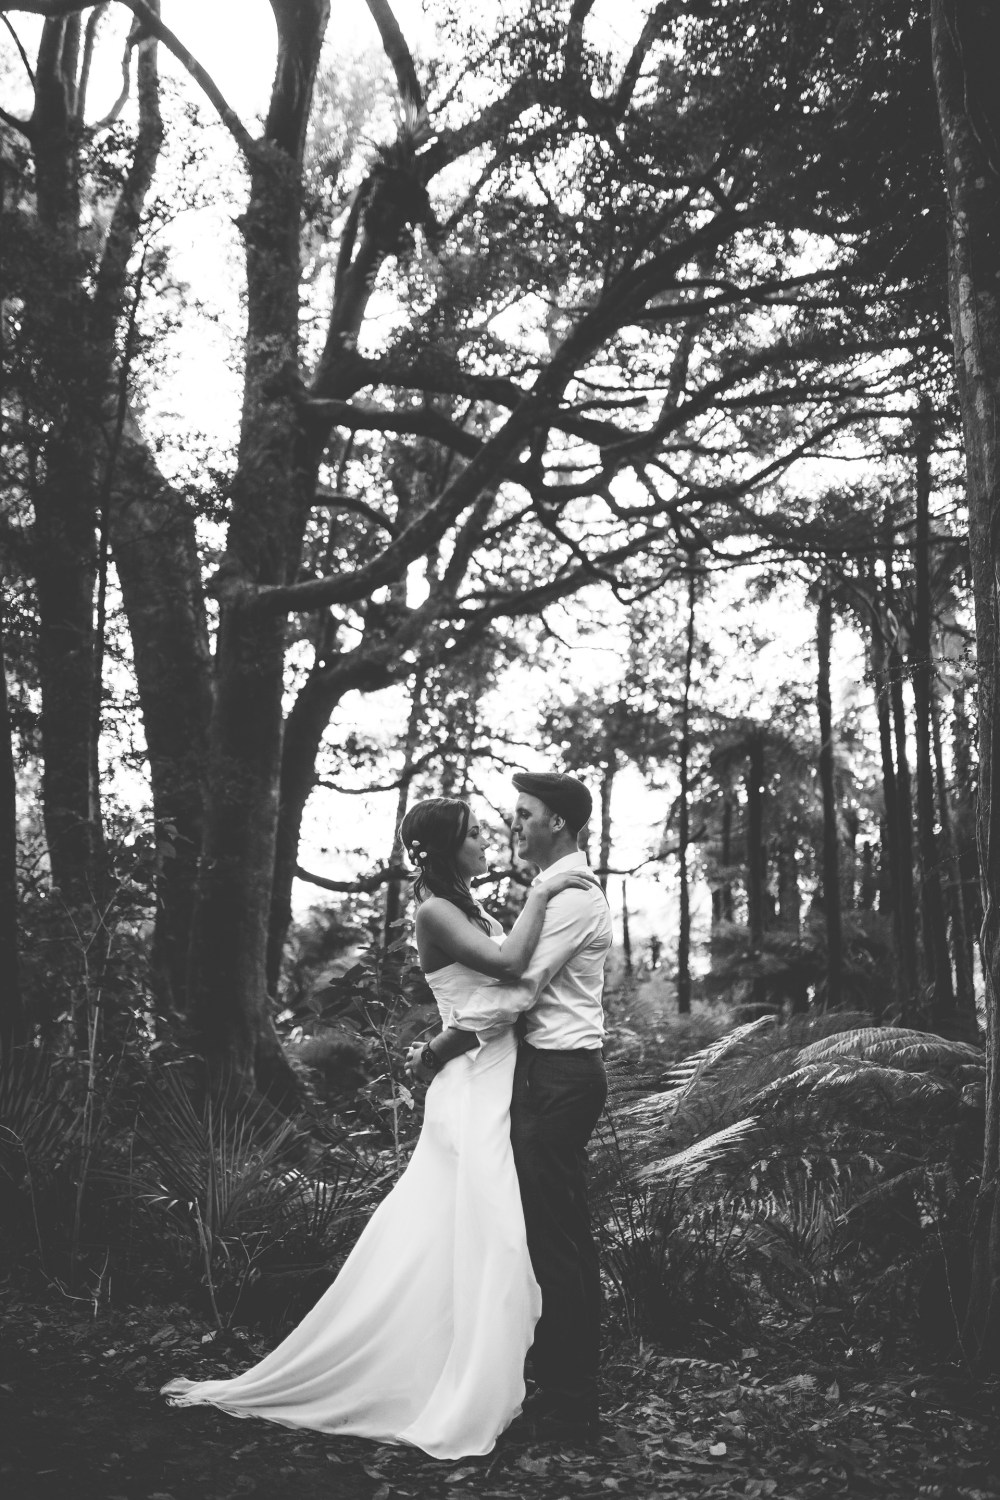 The_Official_Photographers_shannon-Noel-Pirongia-forest-park-wedding_MG_1165